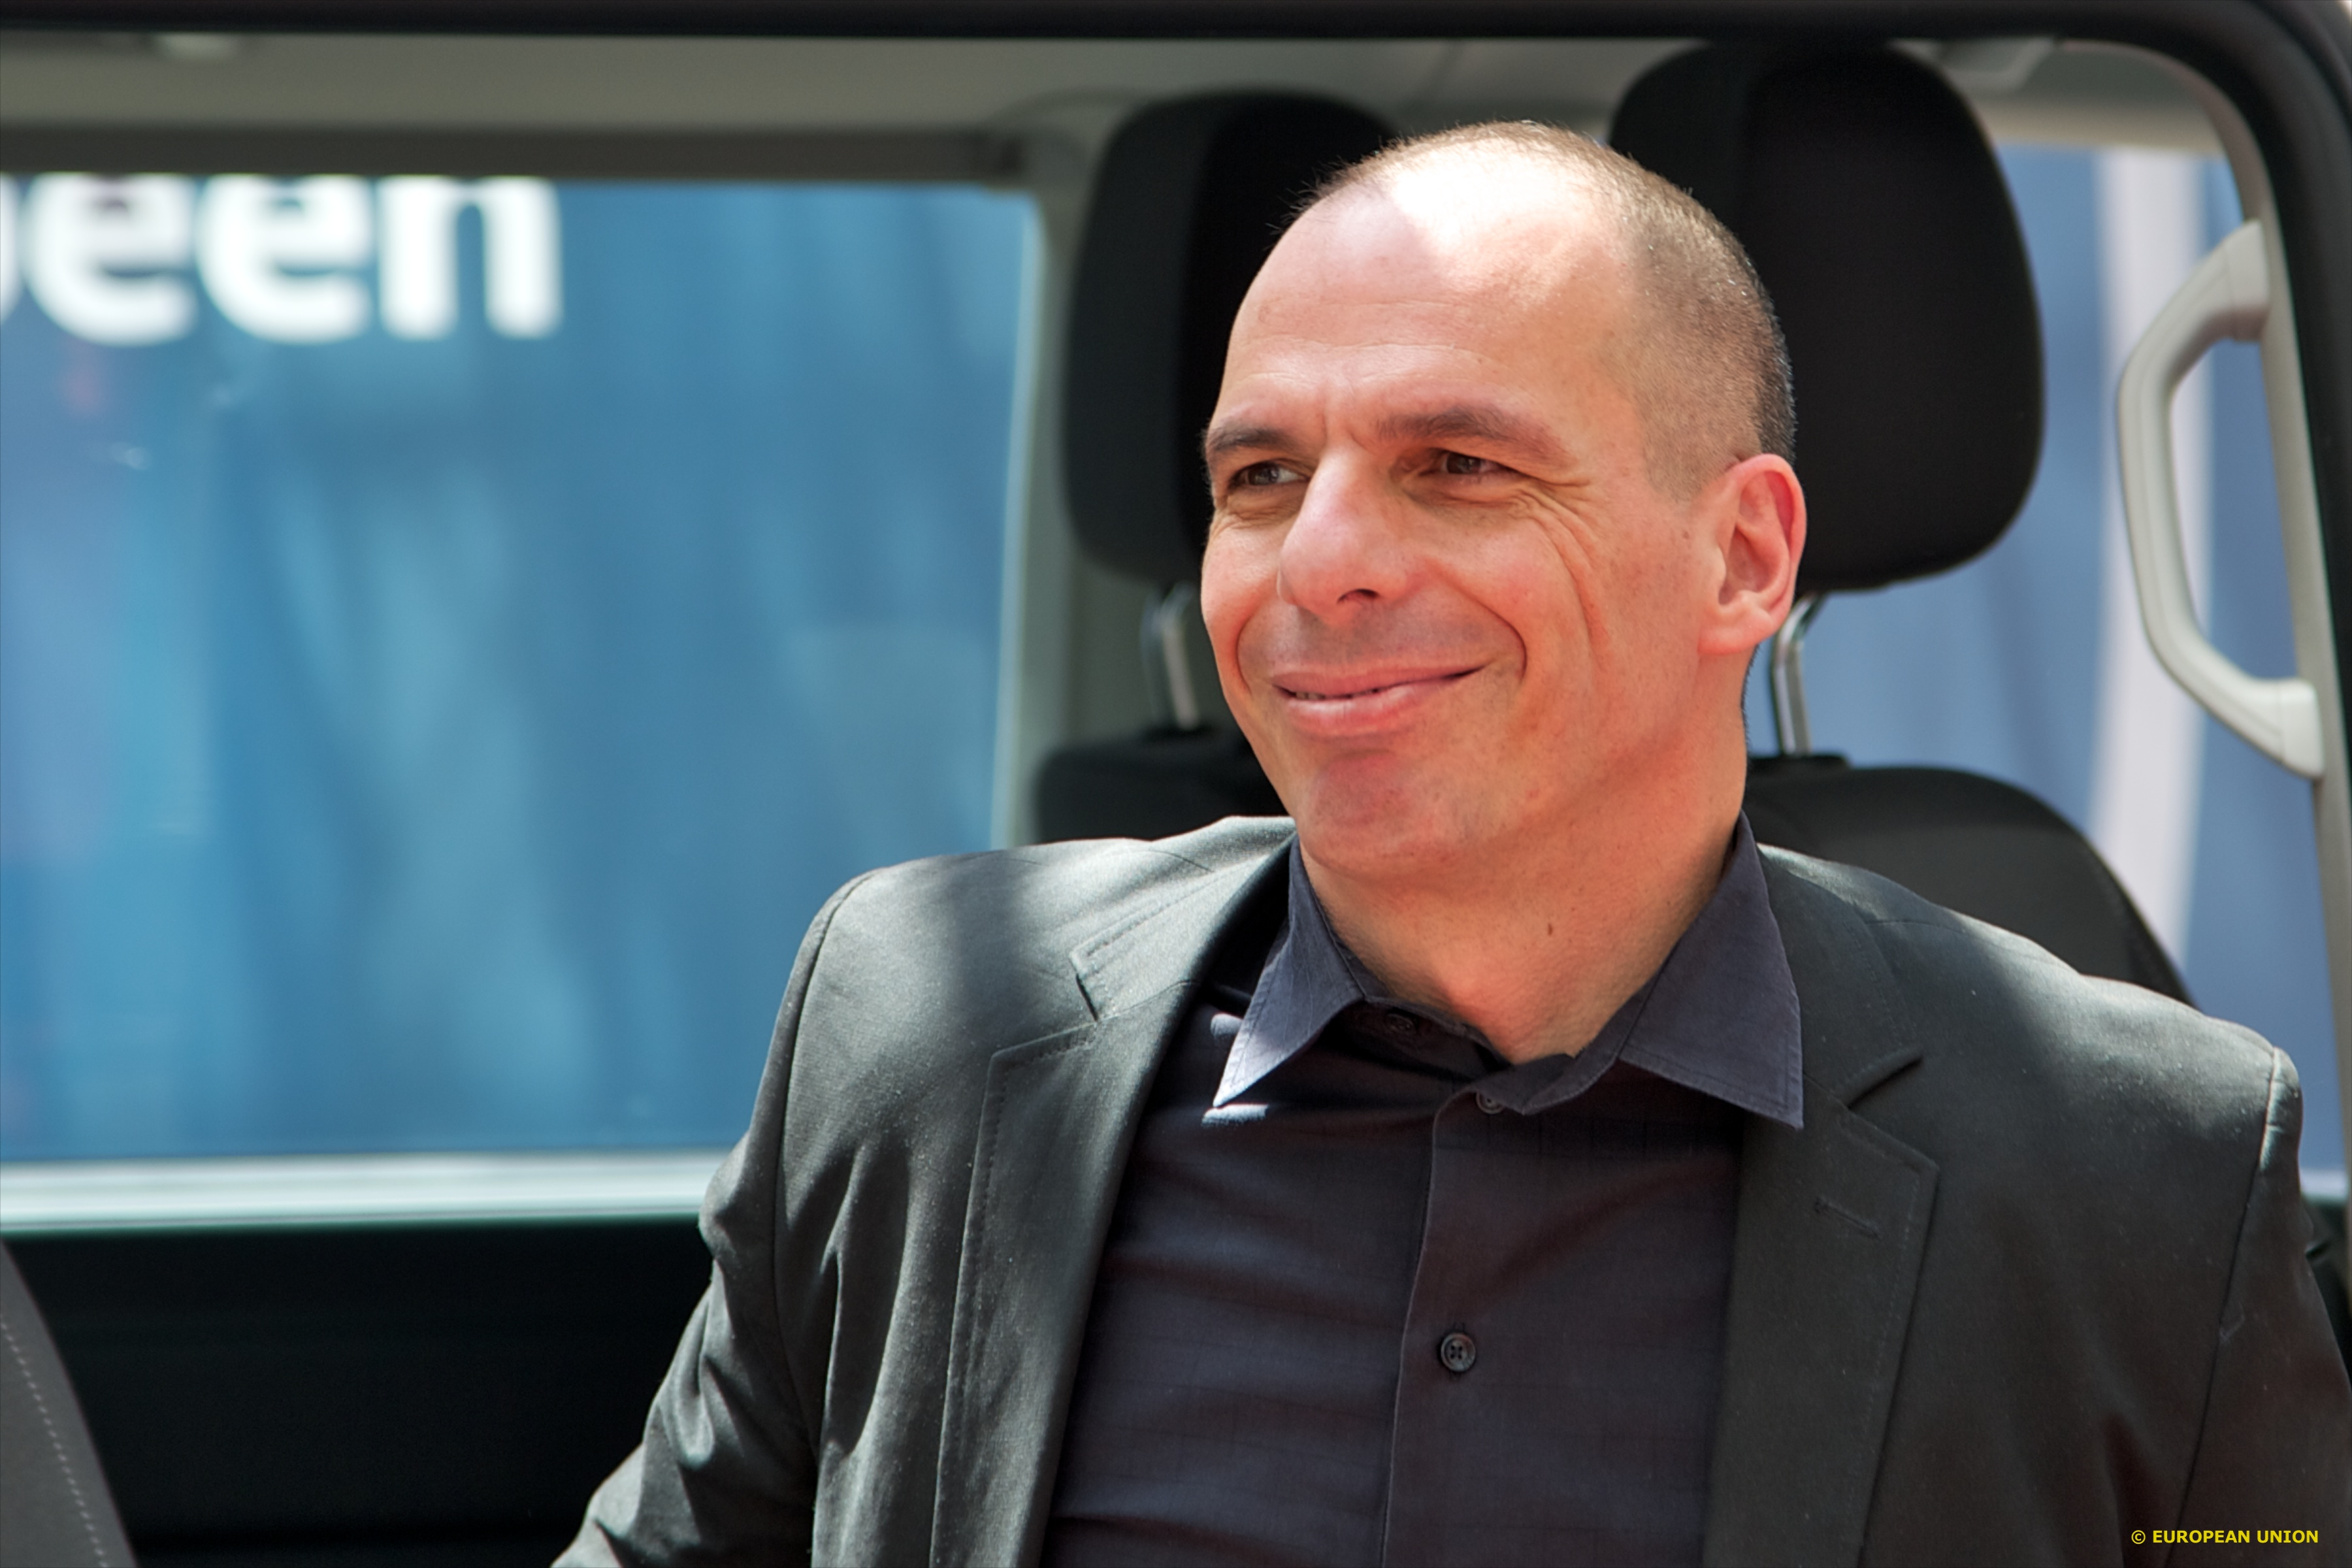 Greek finance minister Yanis Varoufakis arrives for Saturday's Eurogroup meeting.